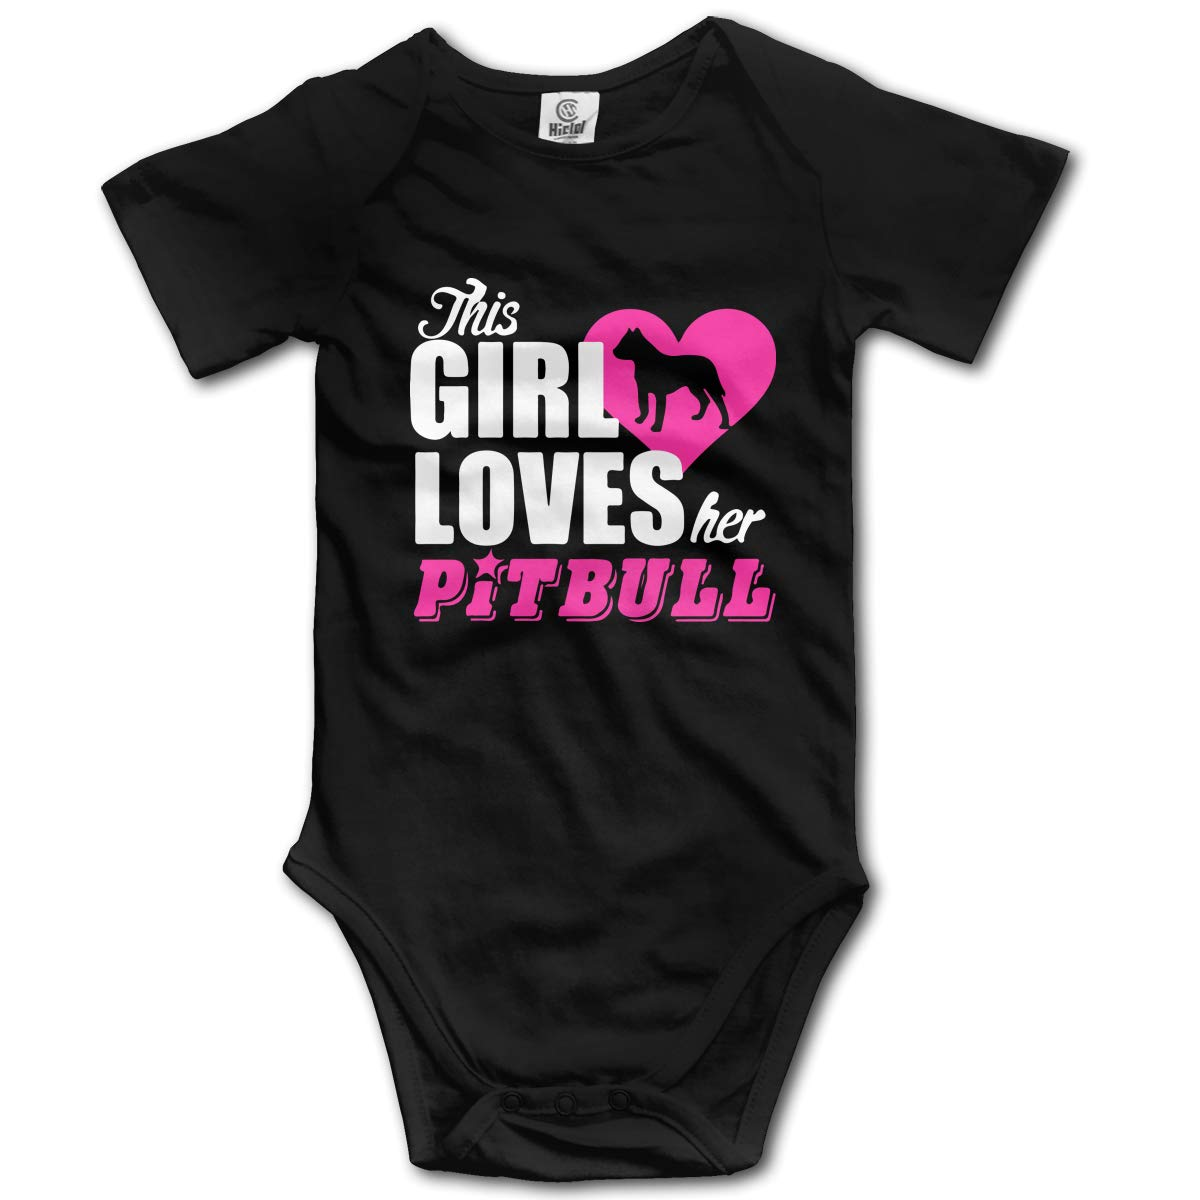 This Girl Loves Her Pitbull Kids Girl Boy 100/% Organic Cotton Romper Pajamas 0-2T